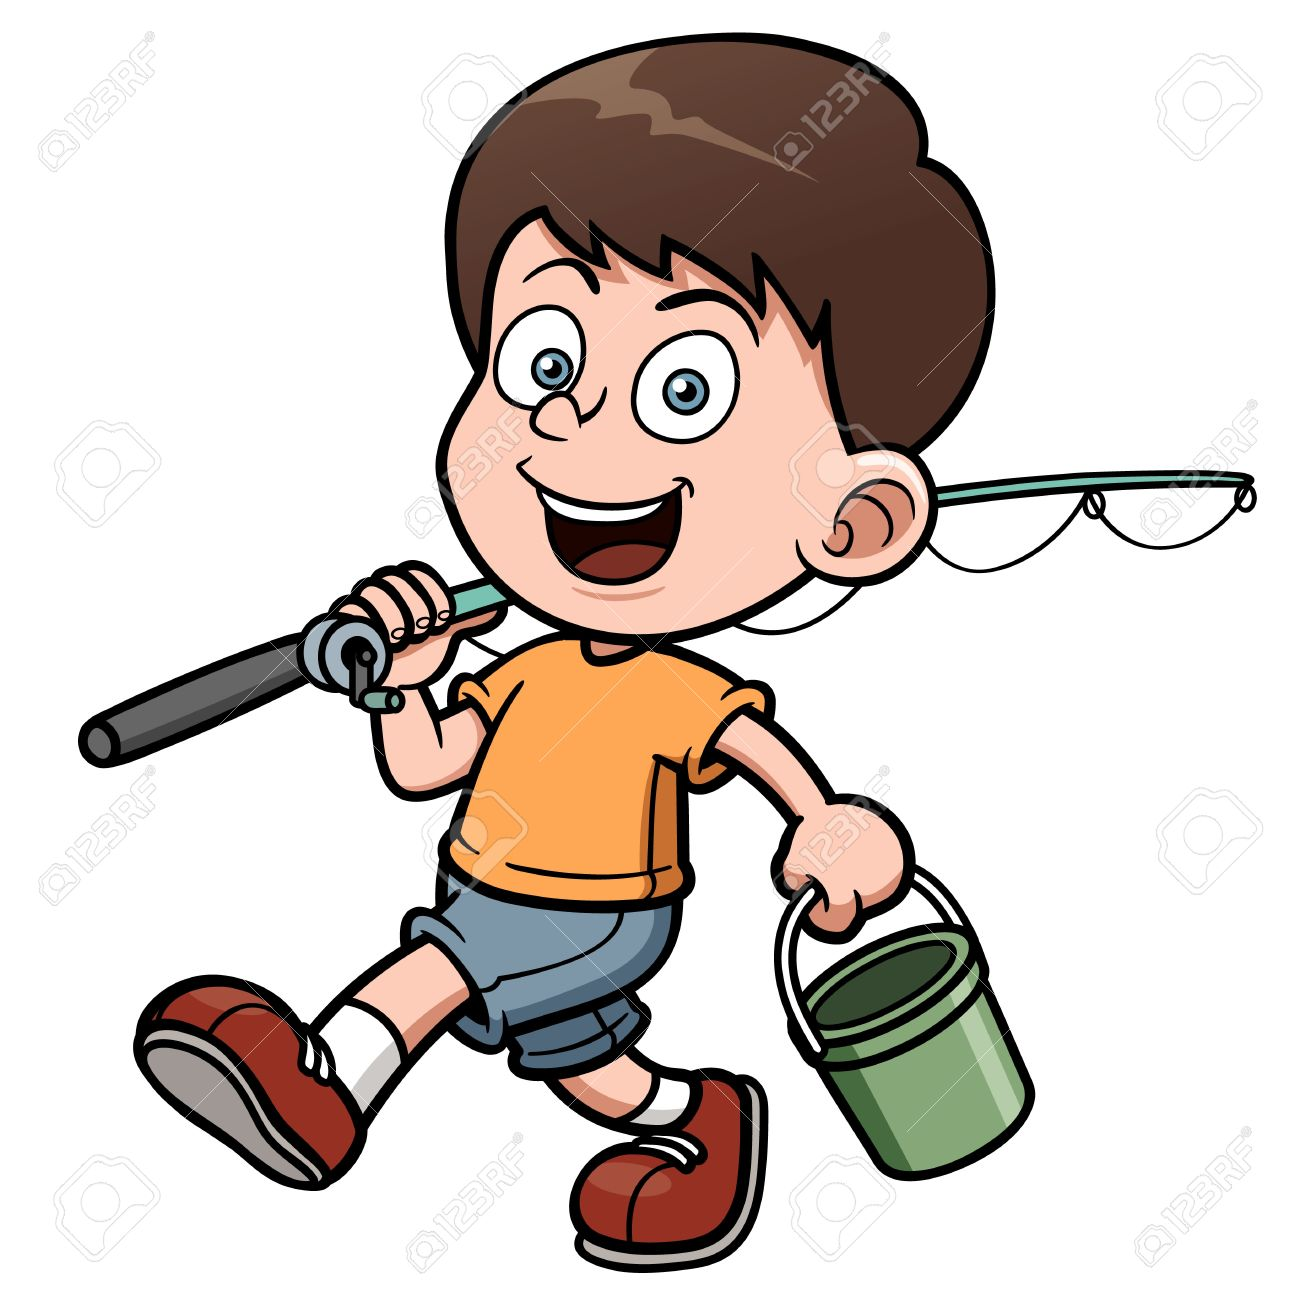 Kid fishing clipart 1 » Clipart Station.